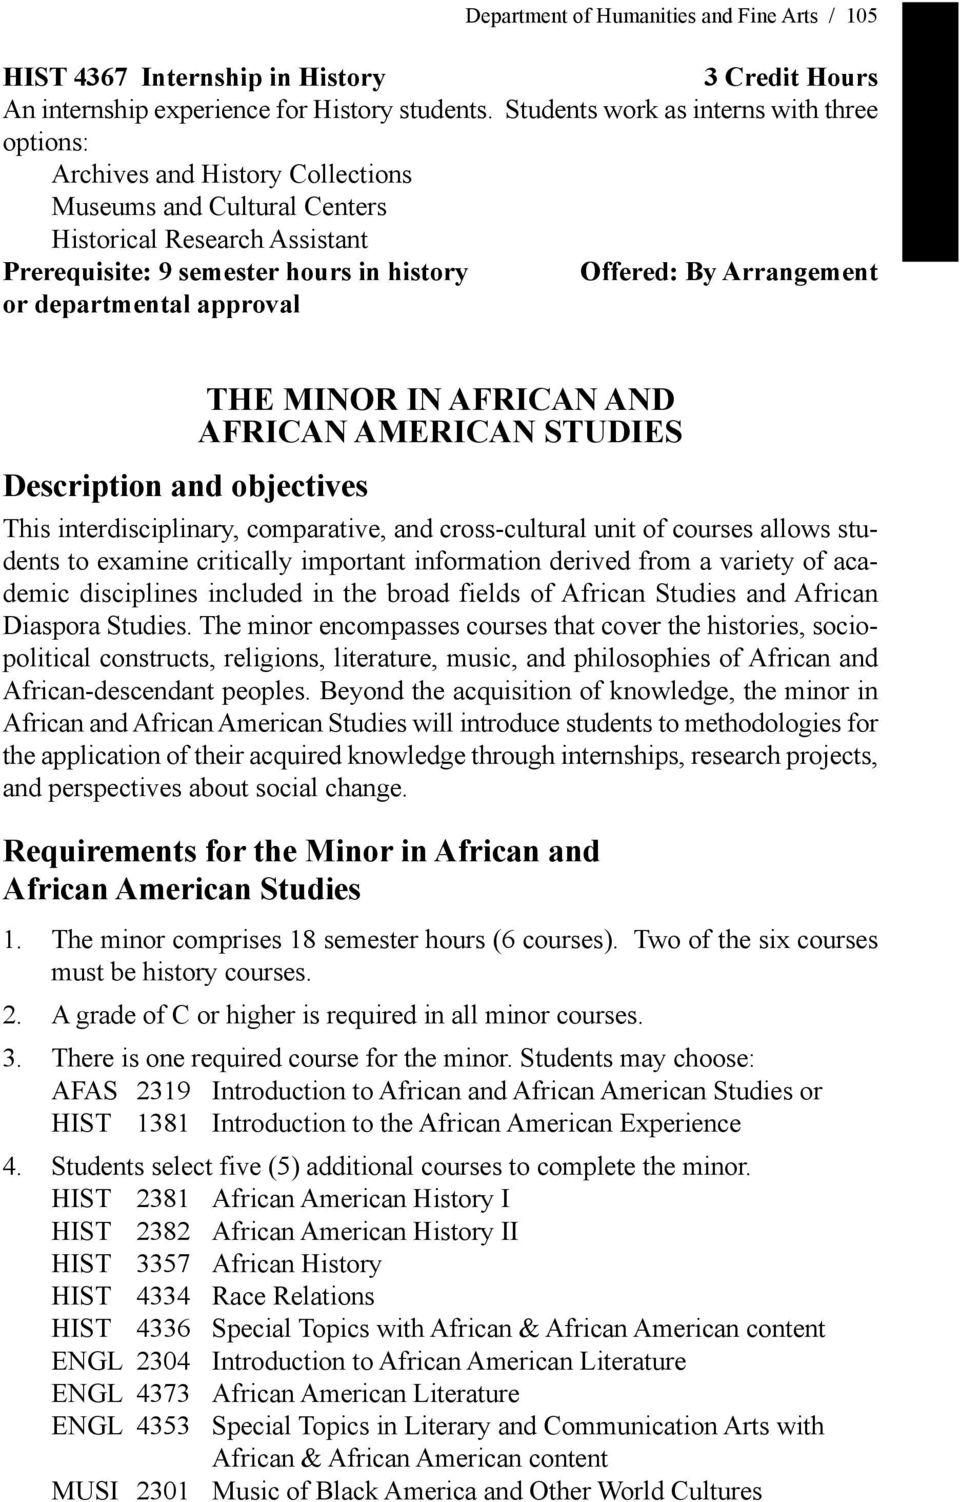 Arrangement or departmental approval Description and objectives THE MINOR IN AFRICAN AND AFRICAN AMERICAN STUDIES This interdisciplinary, comparative, and cross-cultural unit of courses allows